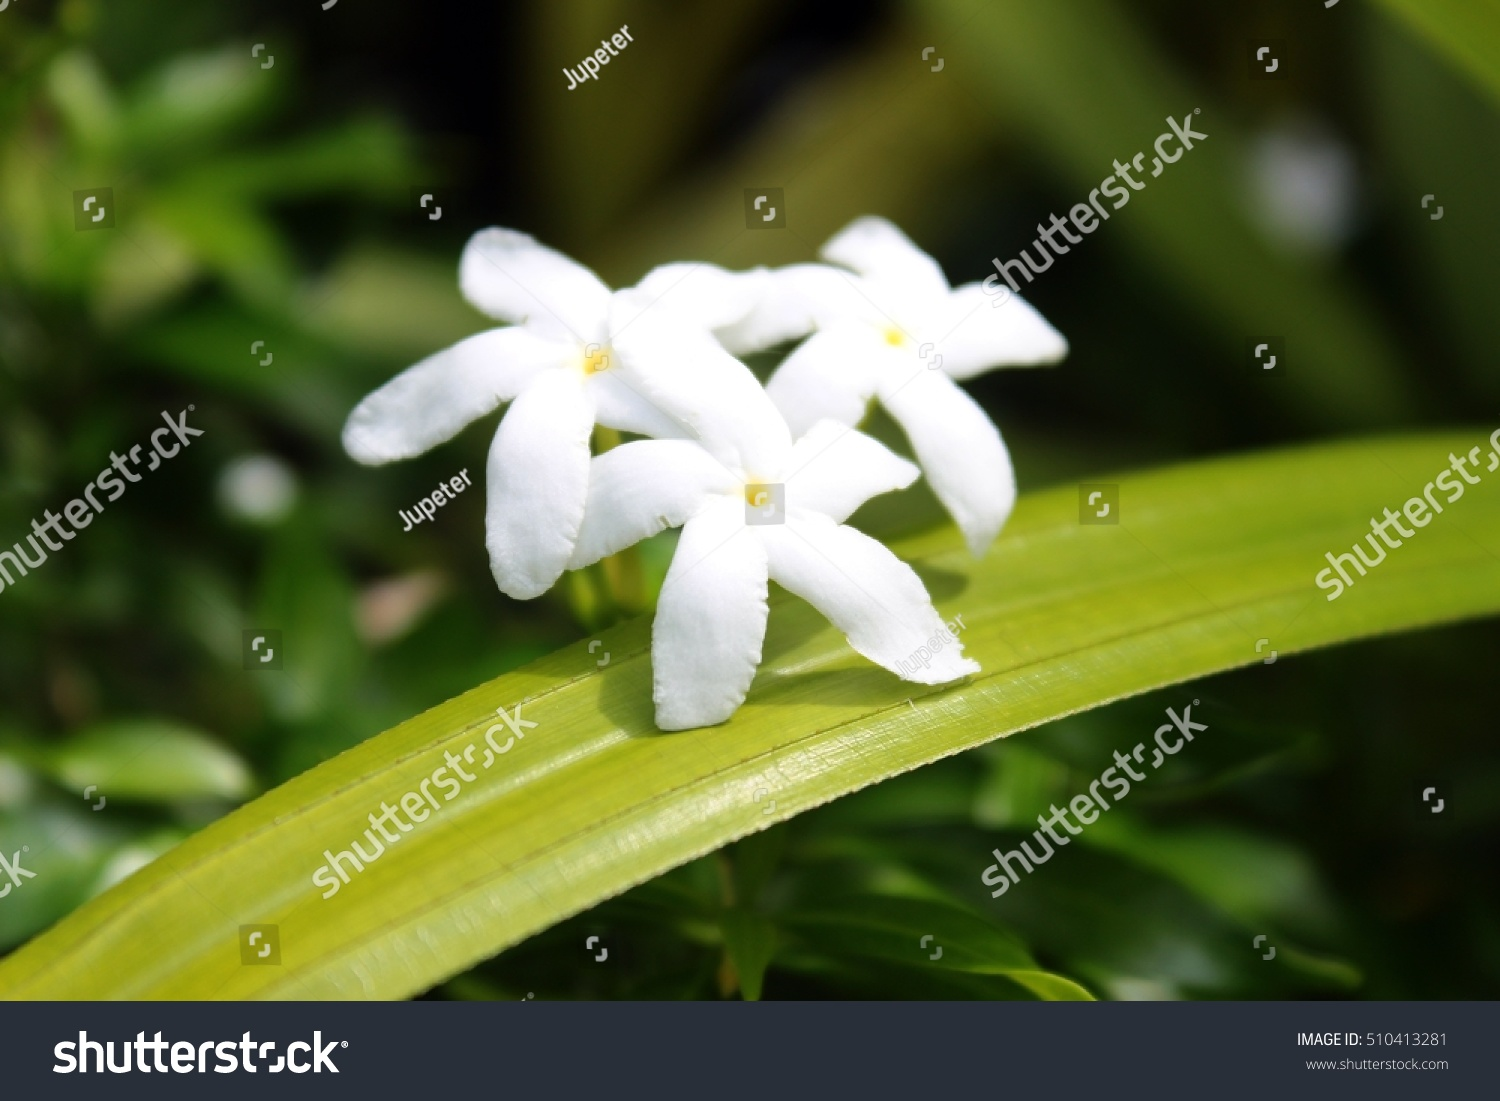 Royalty Free Thai Named Puttaraksa Canna Flower 510413281 Stock